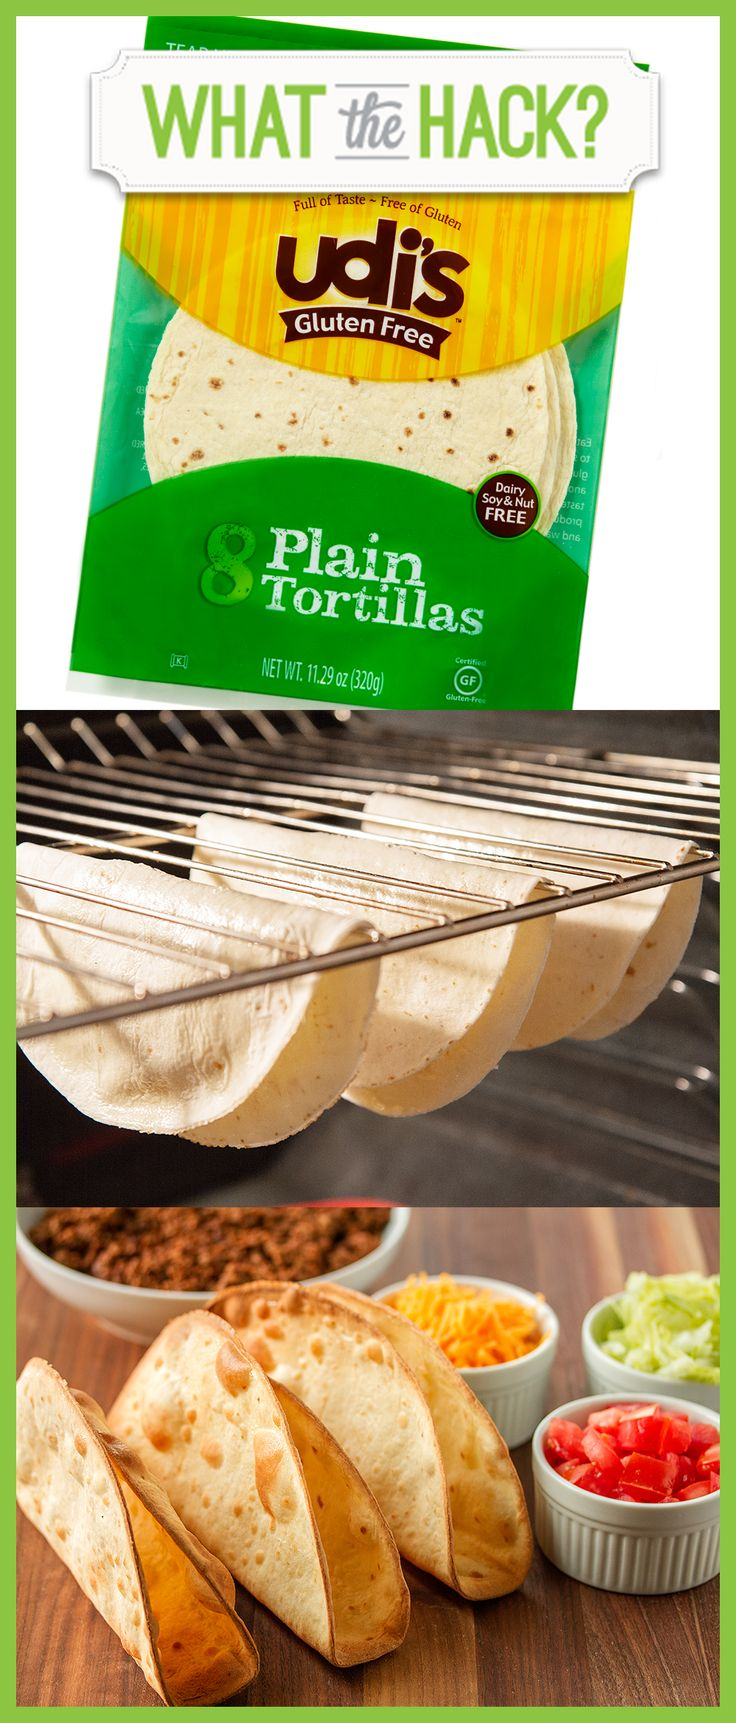 Make your own crispy #glutenfree taco shells with Udi's tortillas! #WhatTheHack - Visit @udisglutenfree - a sponsor of the #GFFAFest #Austin 2/28-3/1